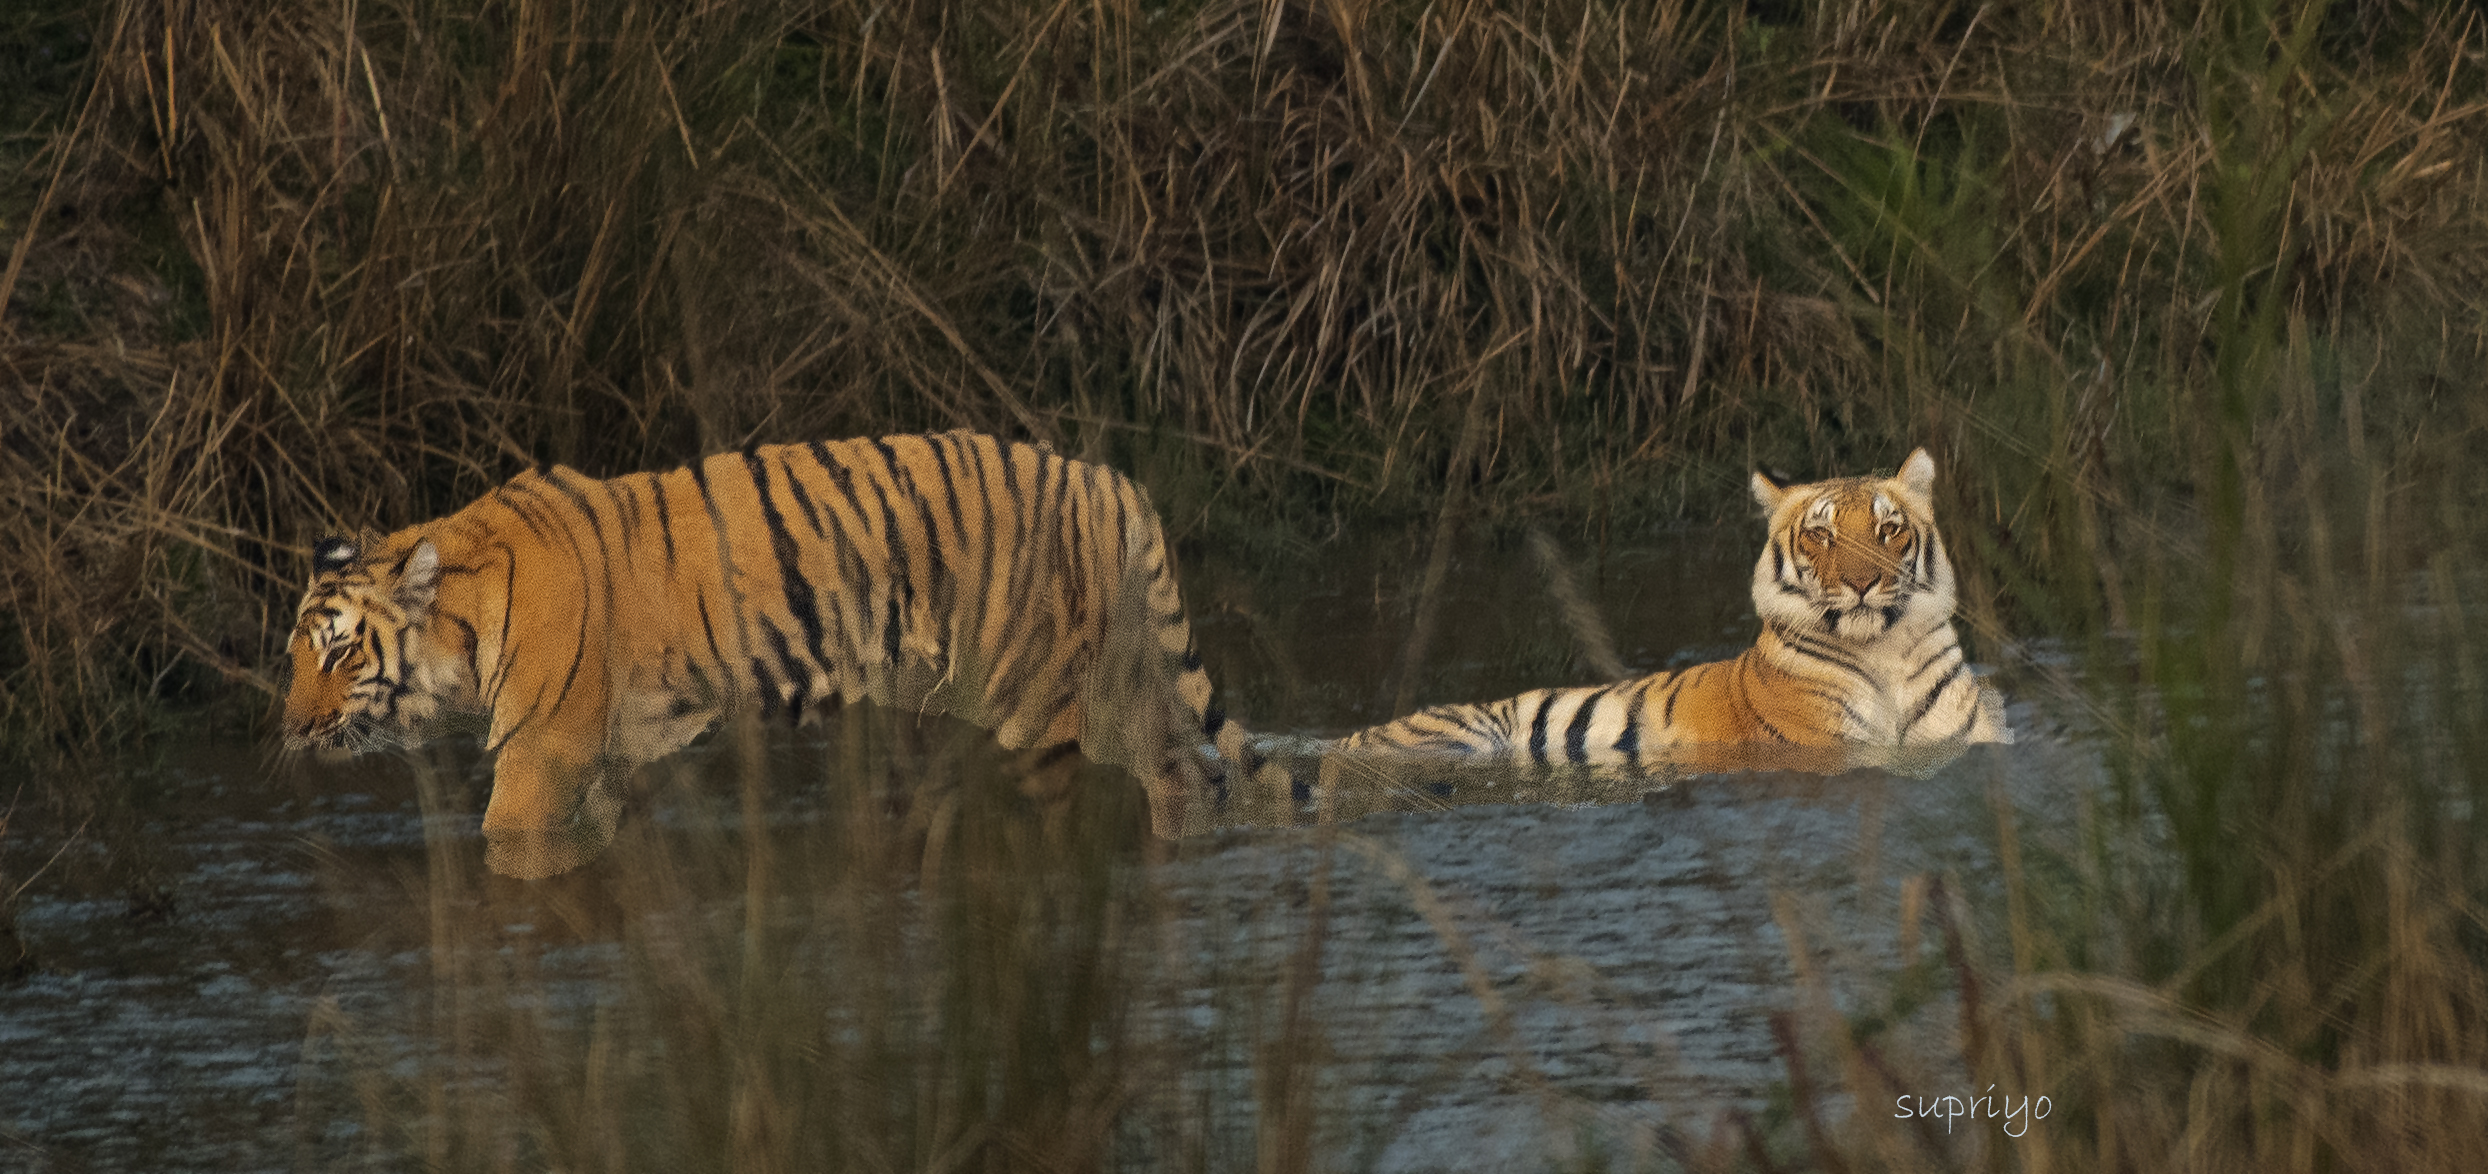 Tiger relaxing in the water